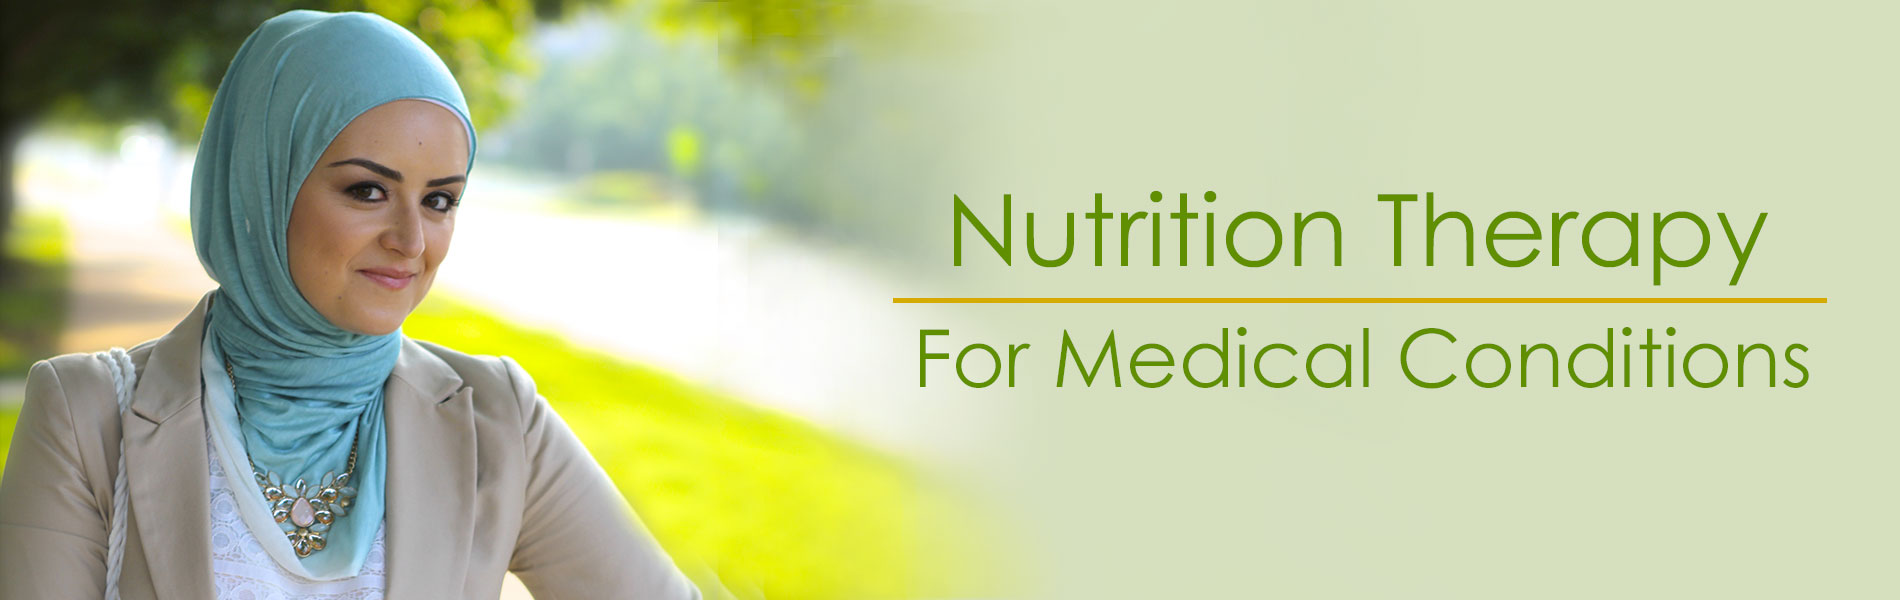 Nutrition Therapy Nour